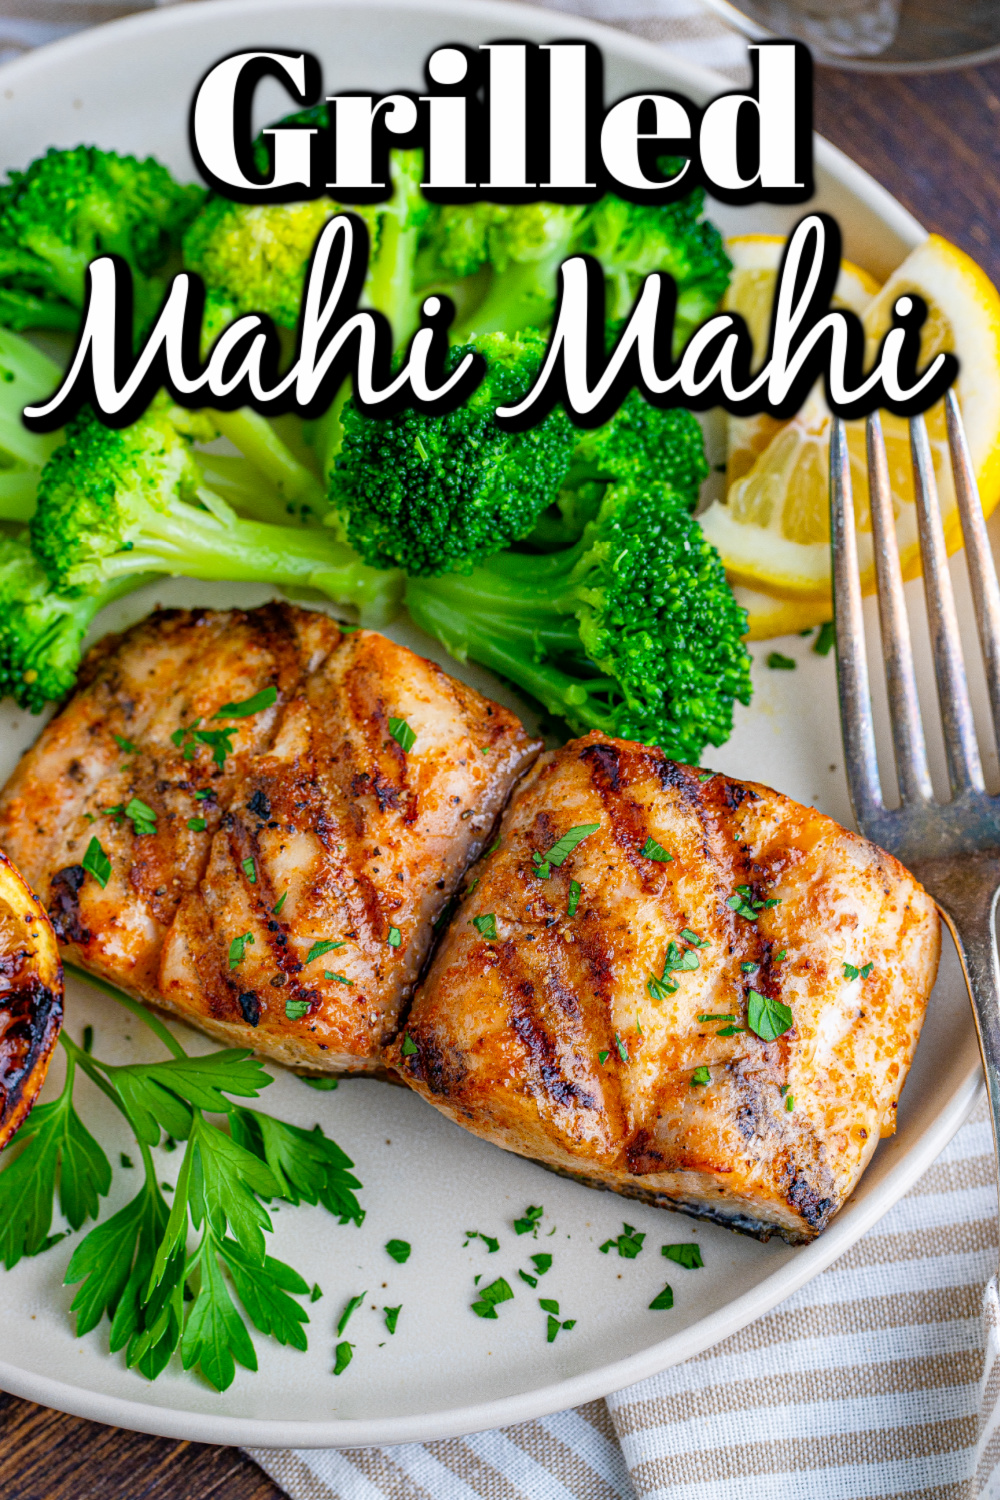 This Grilled Mahi Mahi is an experience, an event, and it is really awesome when you get to serve it to your friends and family!